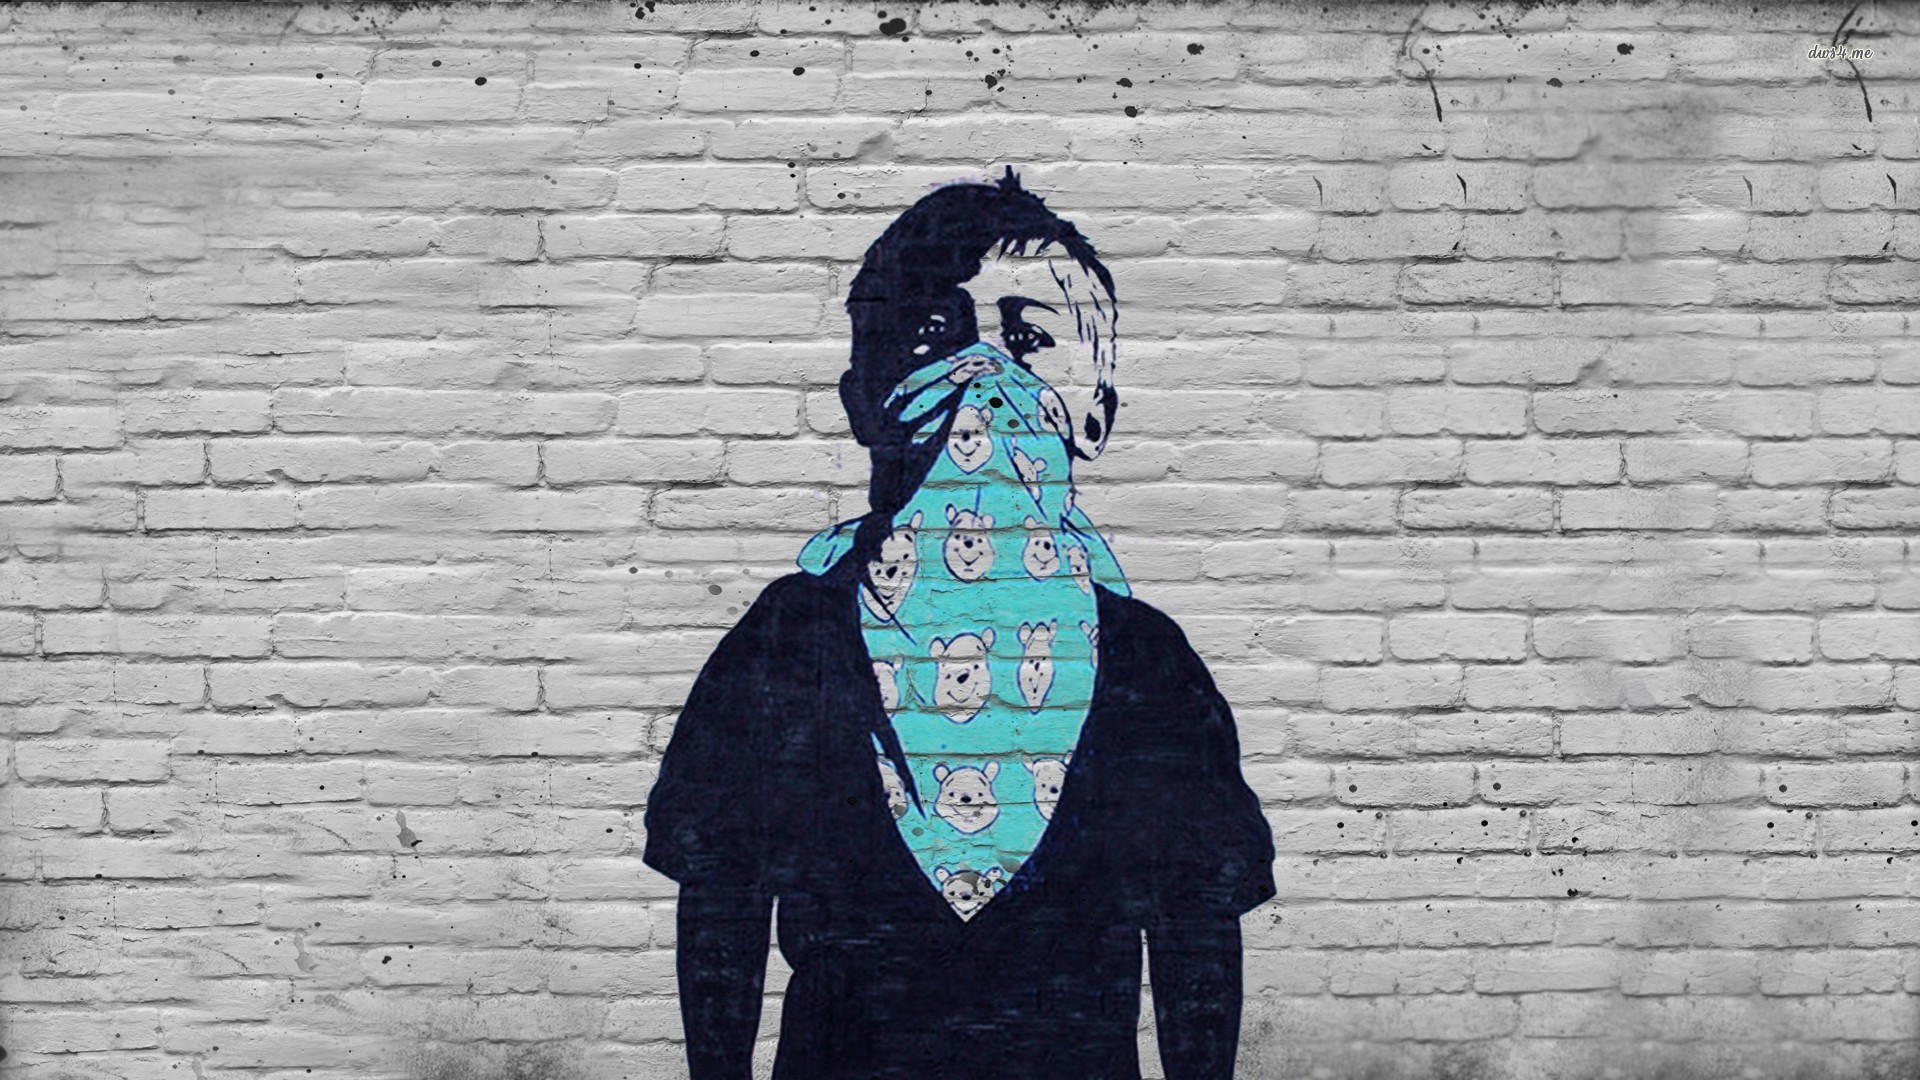 17674-graffiti-of-an-anarchist-boy-1920×1080-artistic-wallpaper